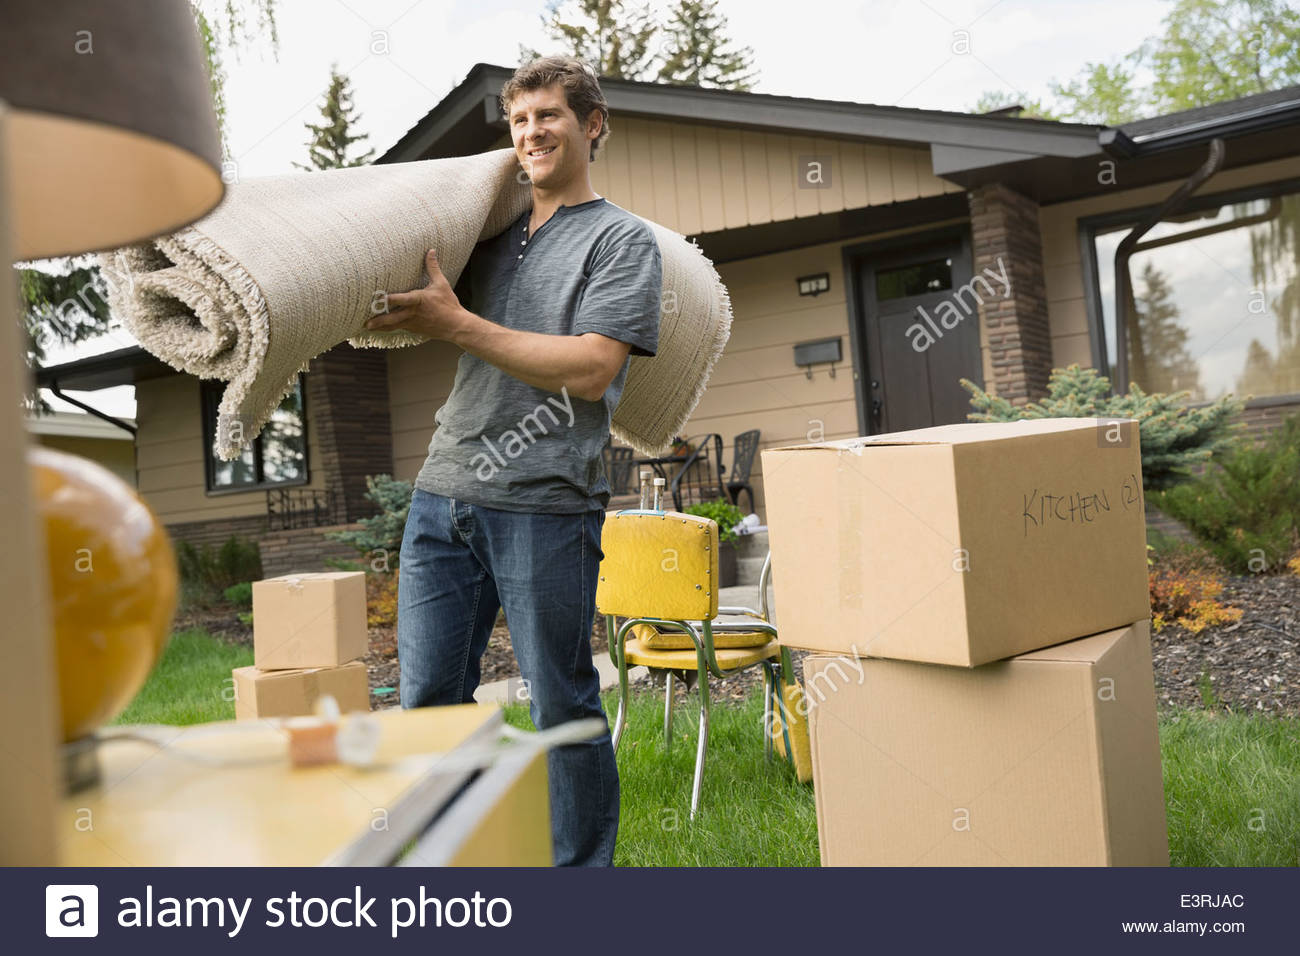 Man carrying rug among belongings in front yard - Stock Image